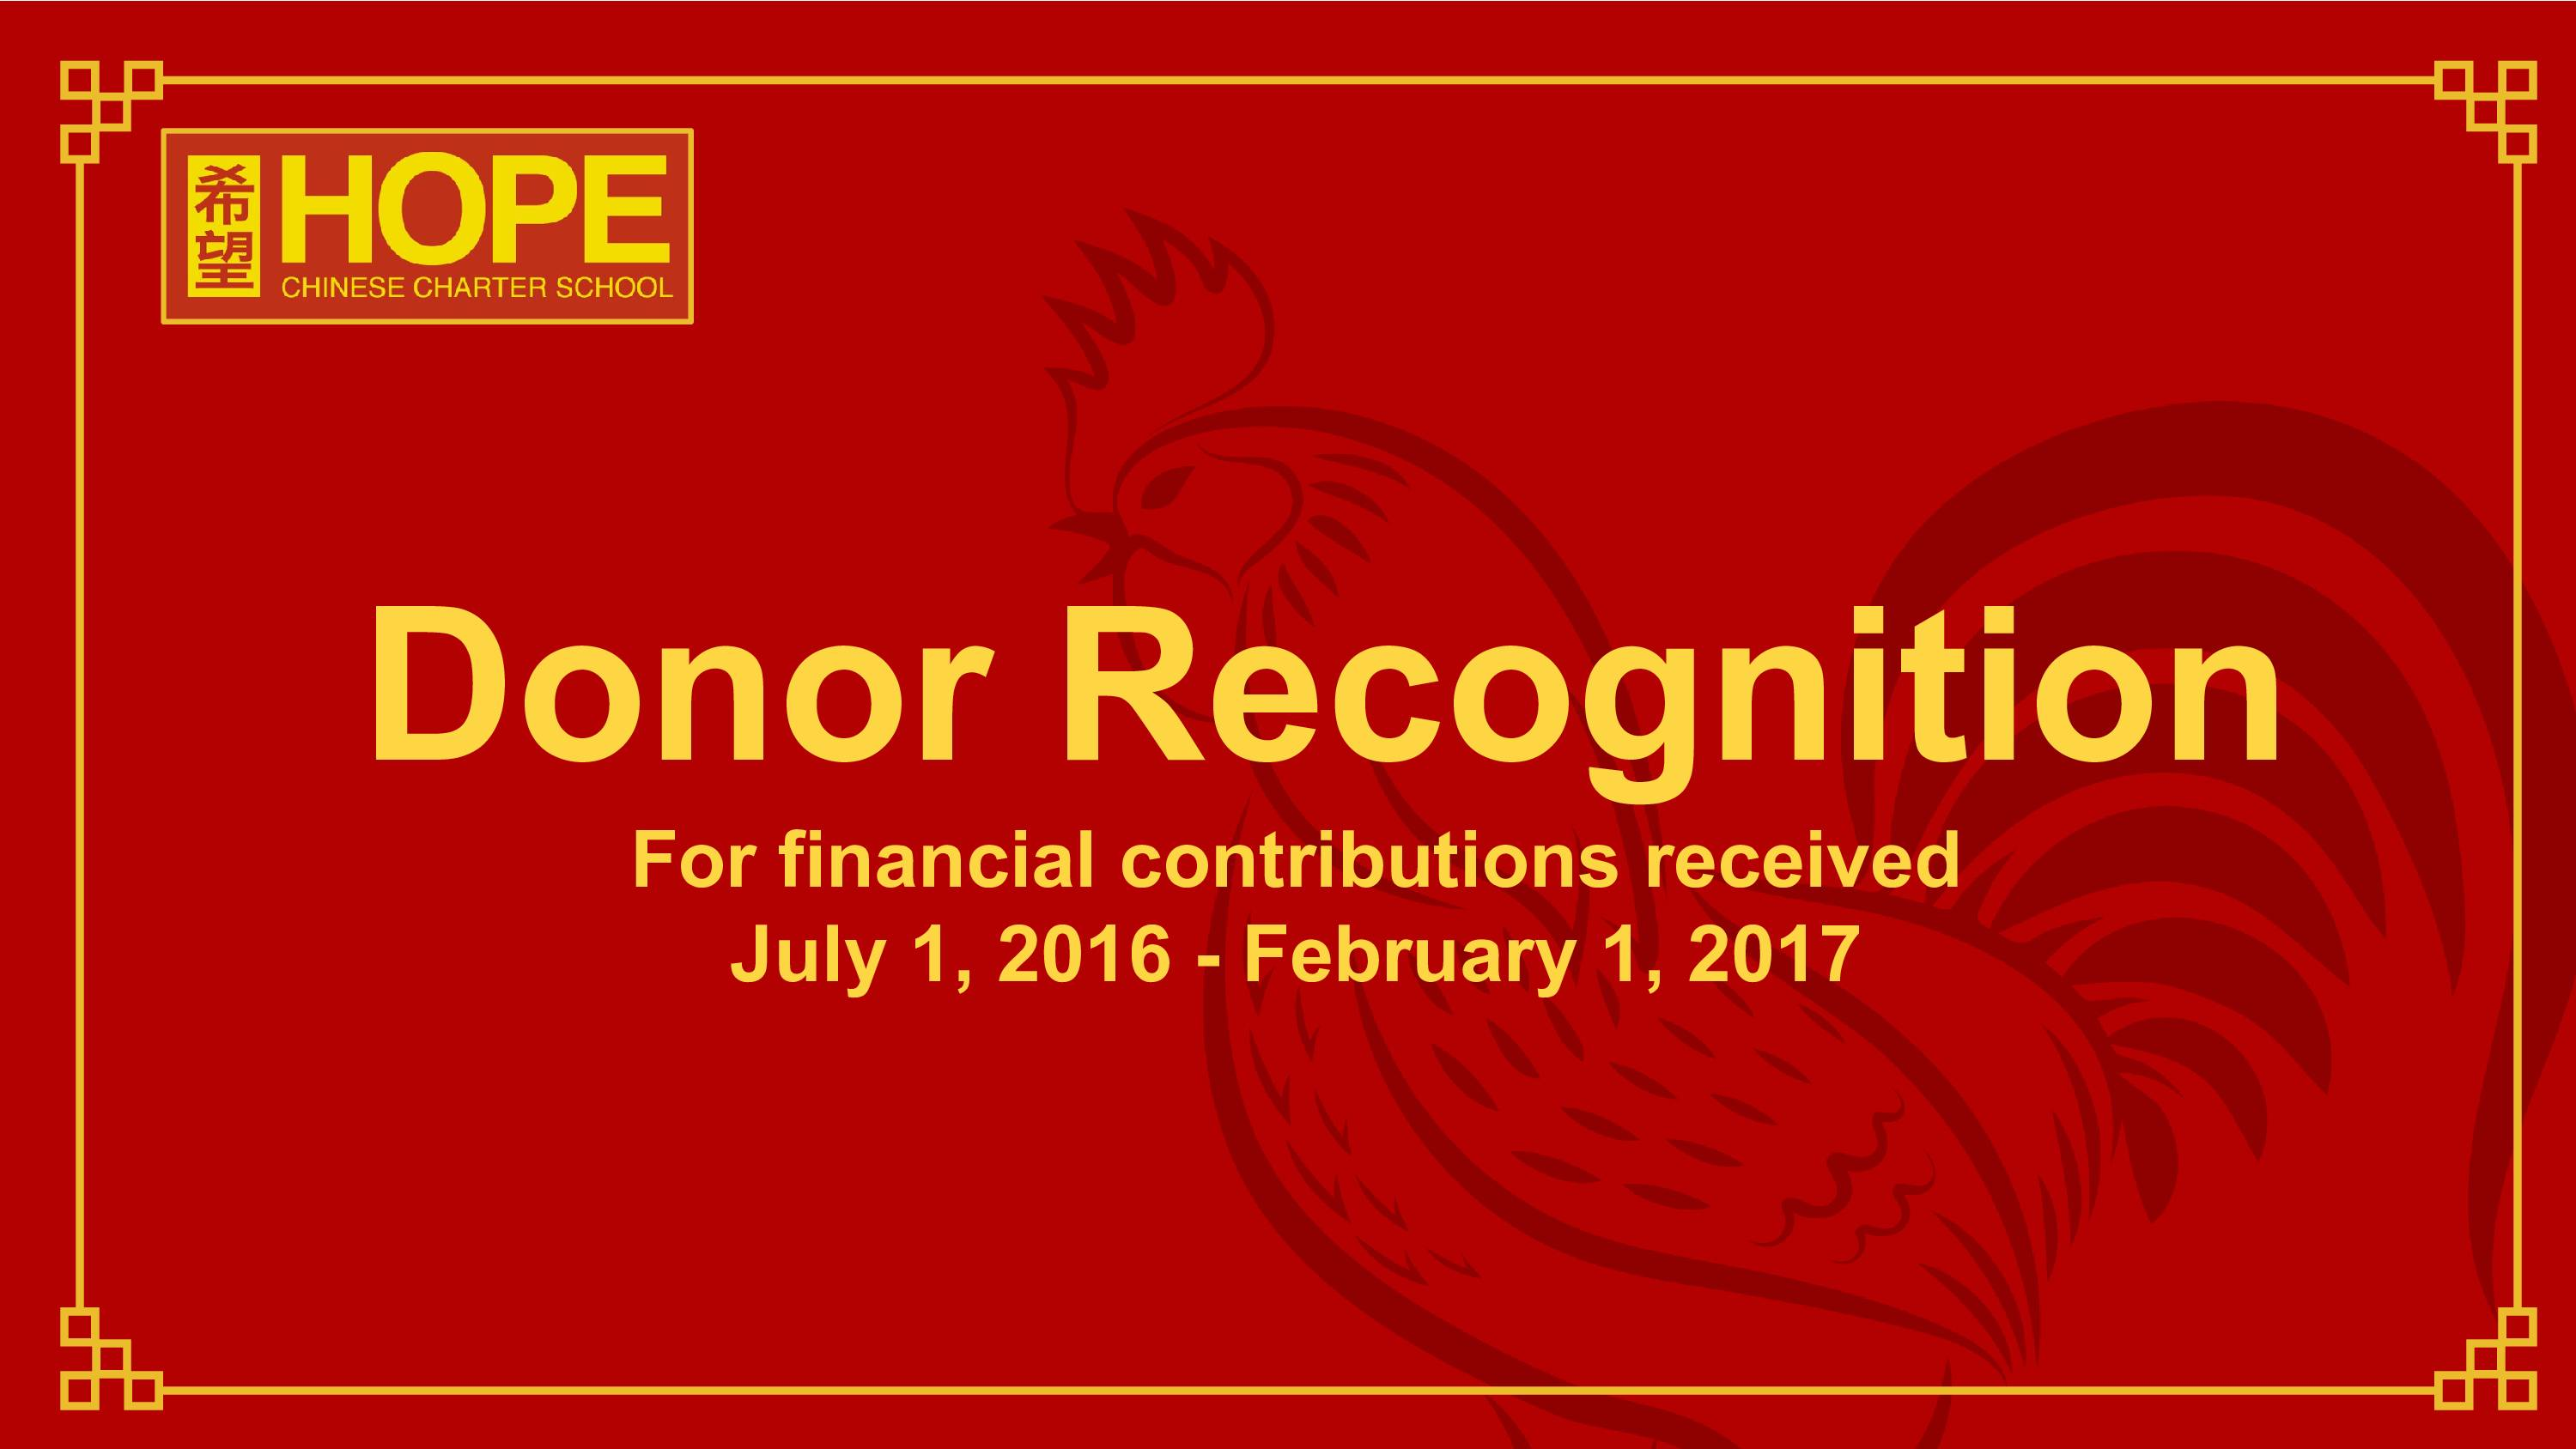 Donor Recognition Report 7/1/16 – 2/1/17